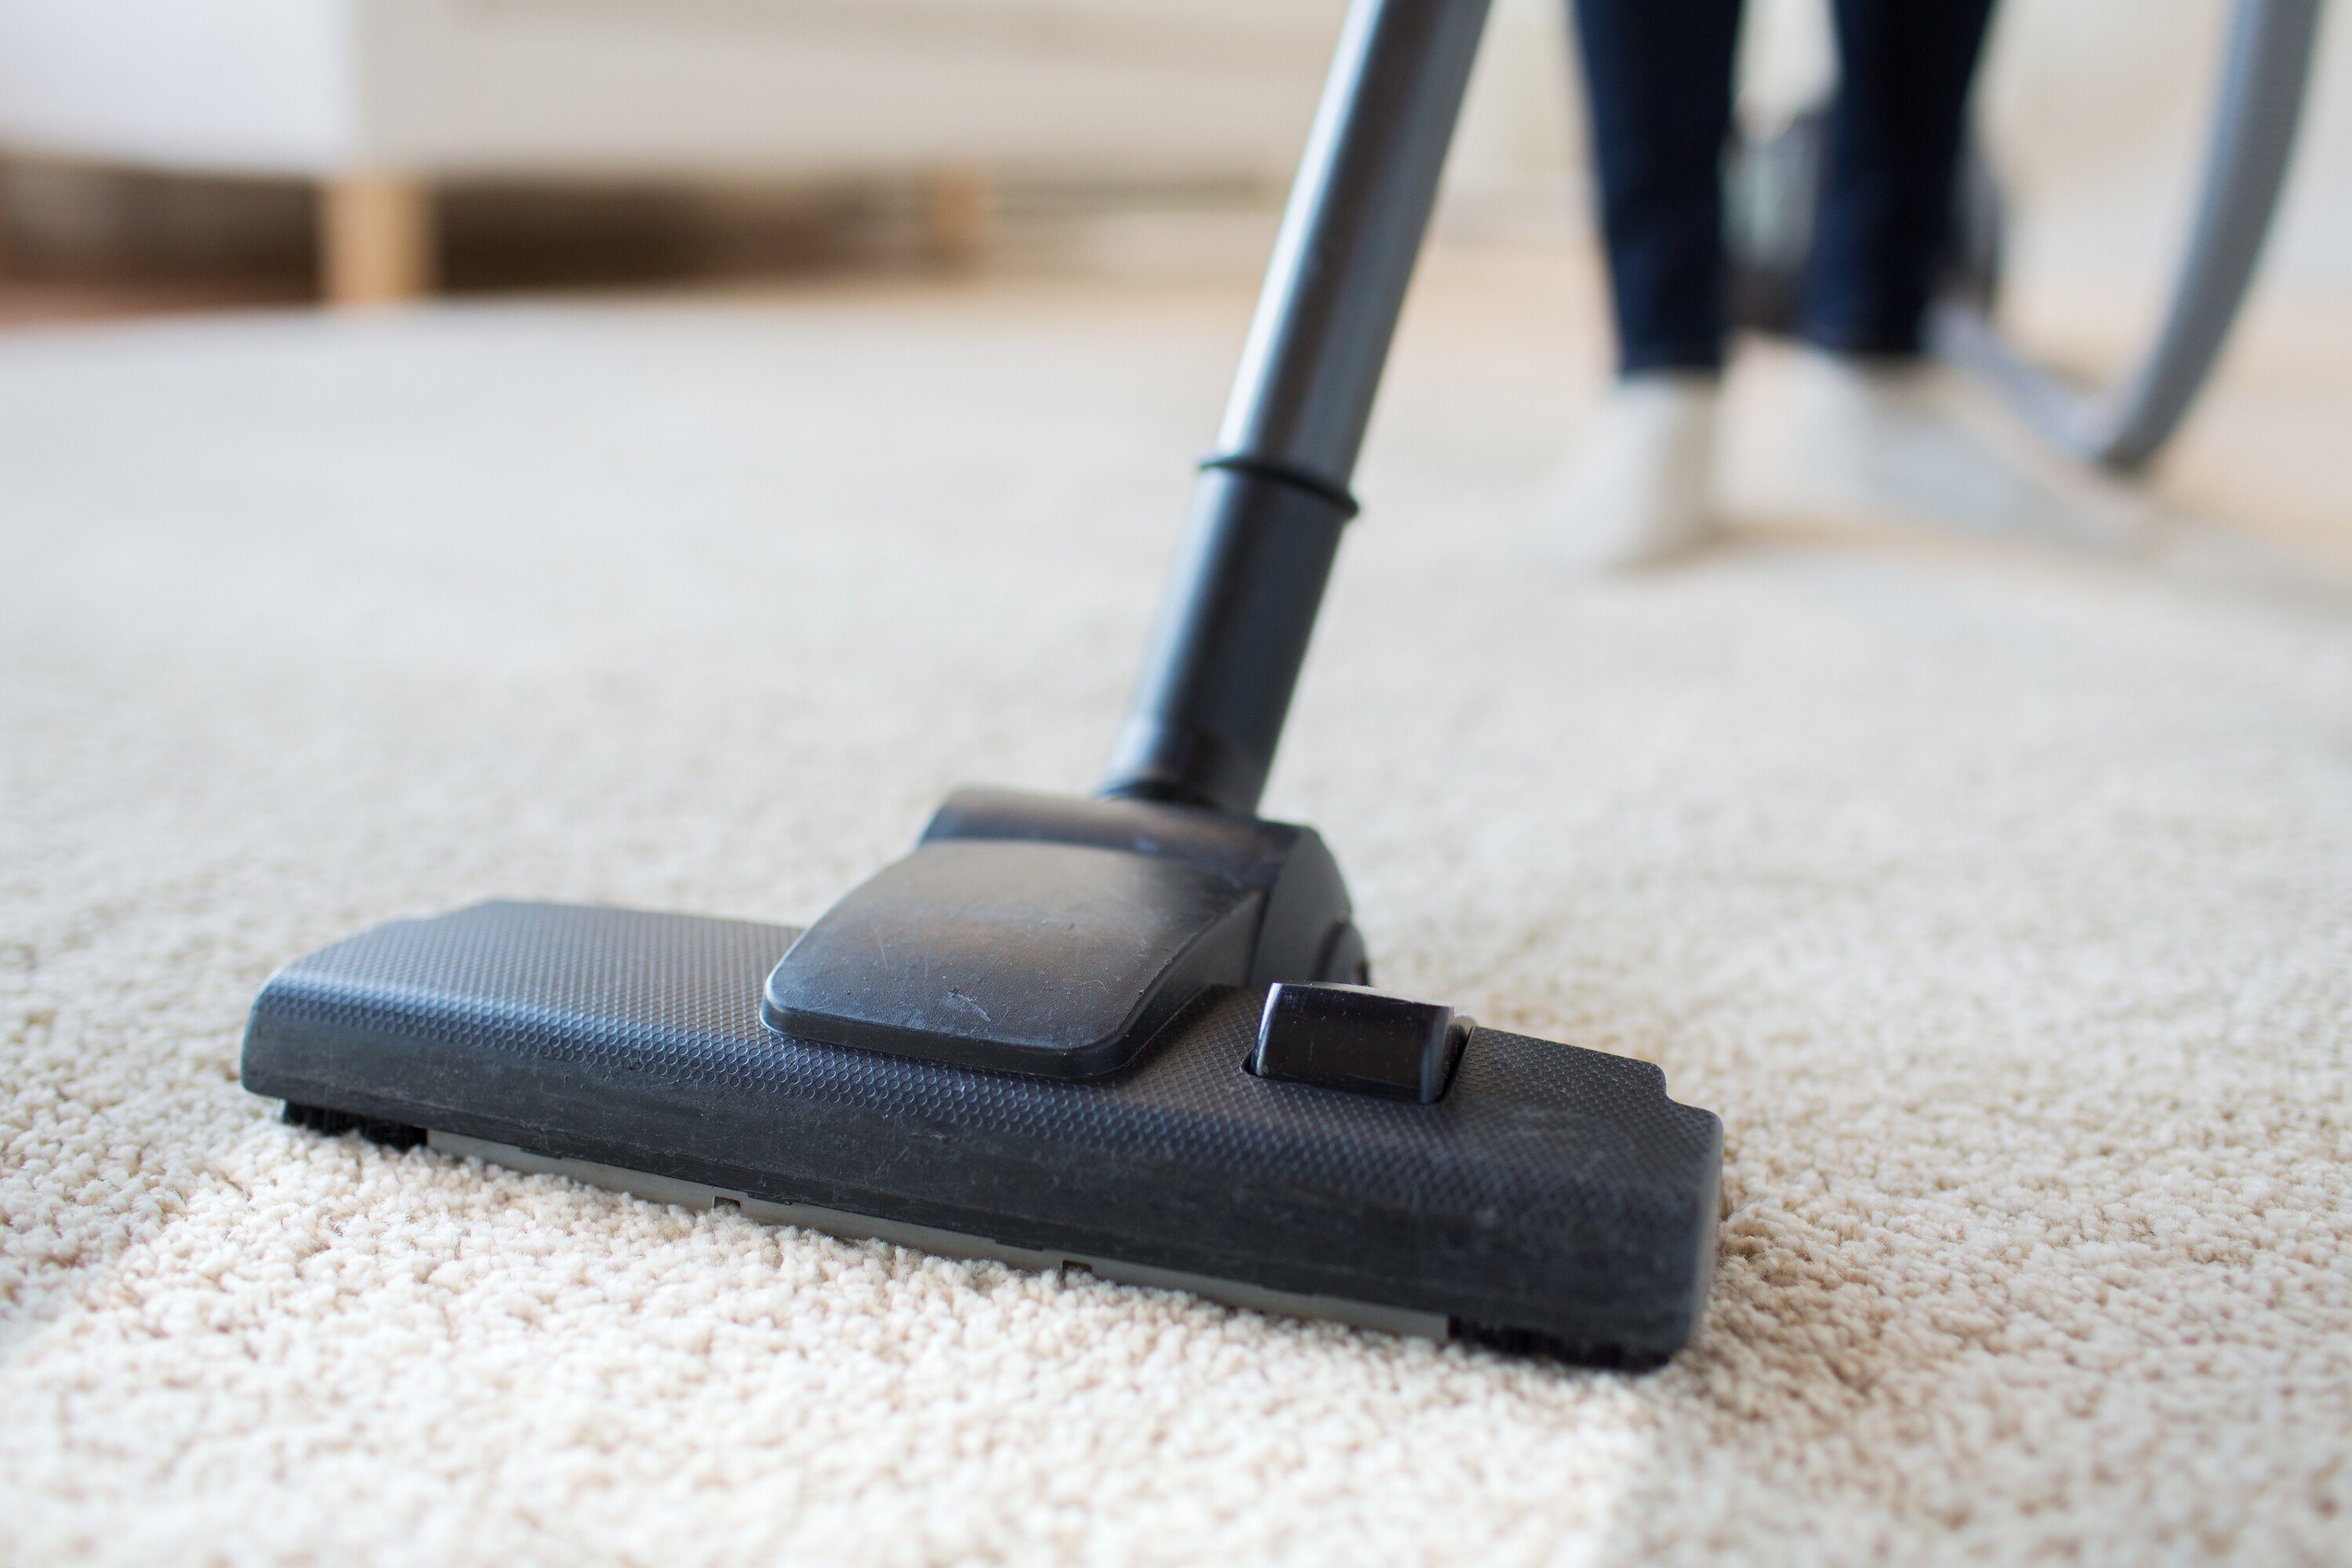 Carpeting being vacuumed in Concord, CA